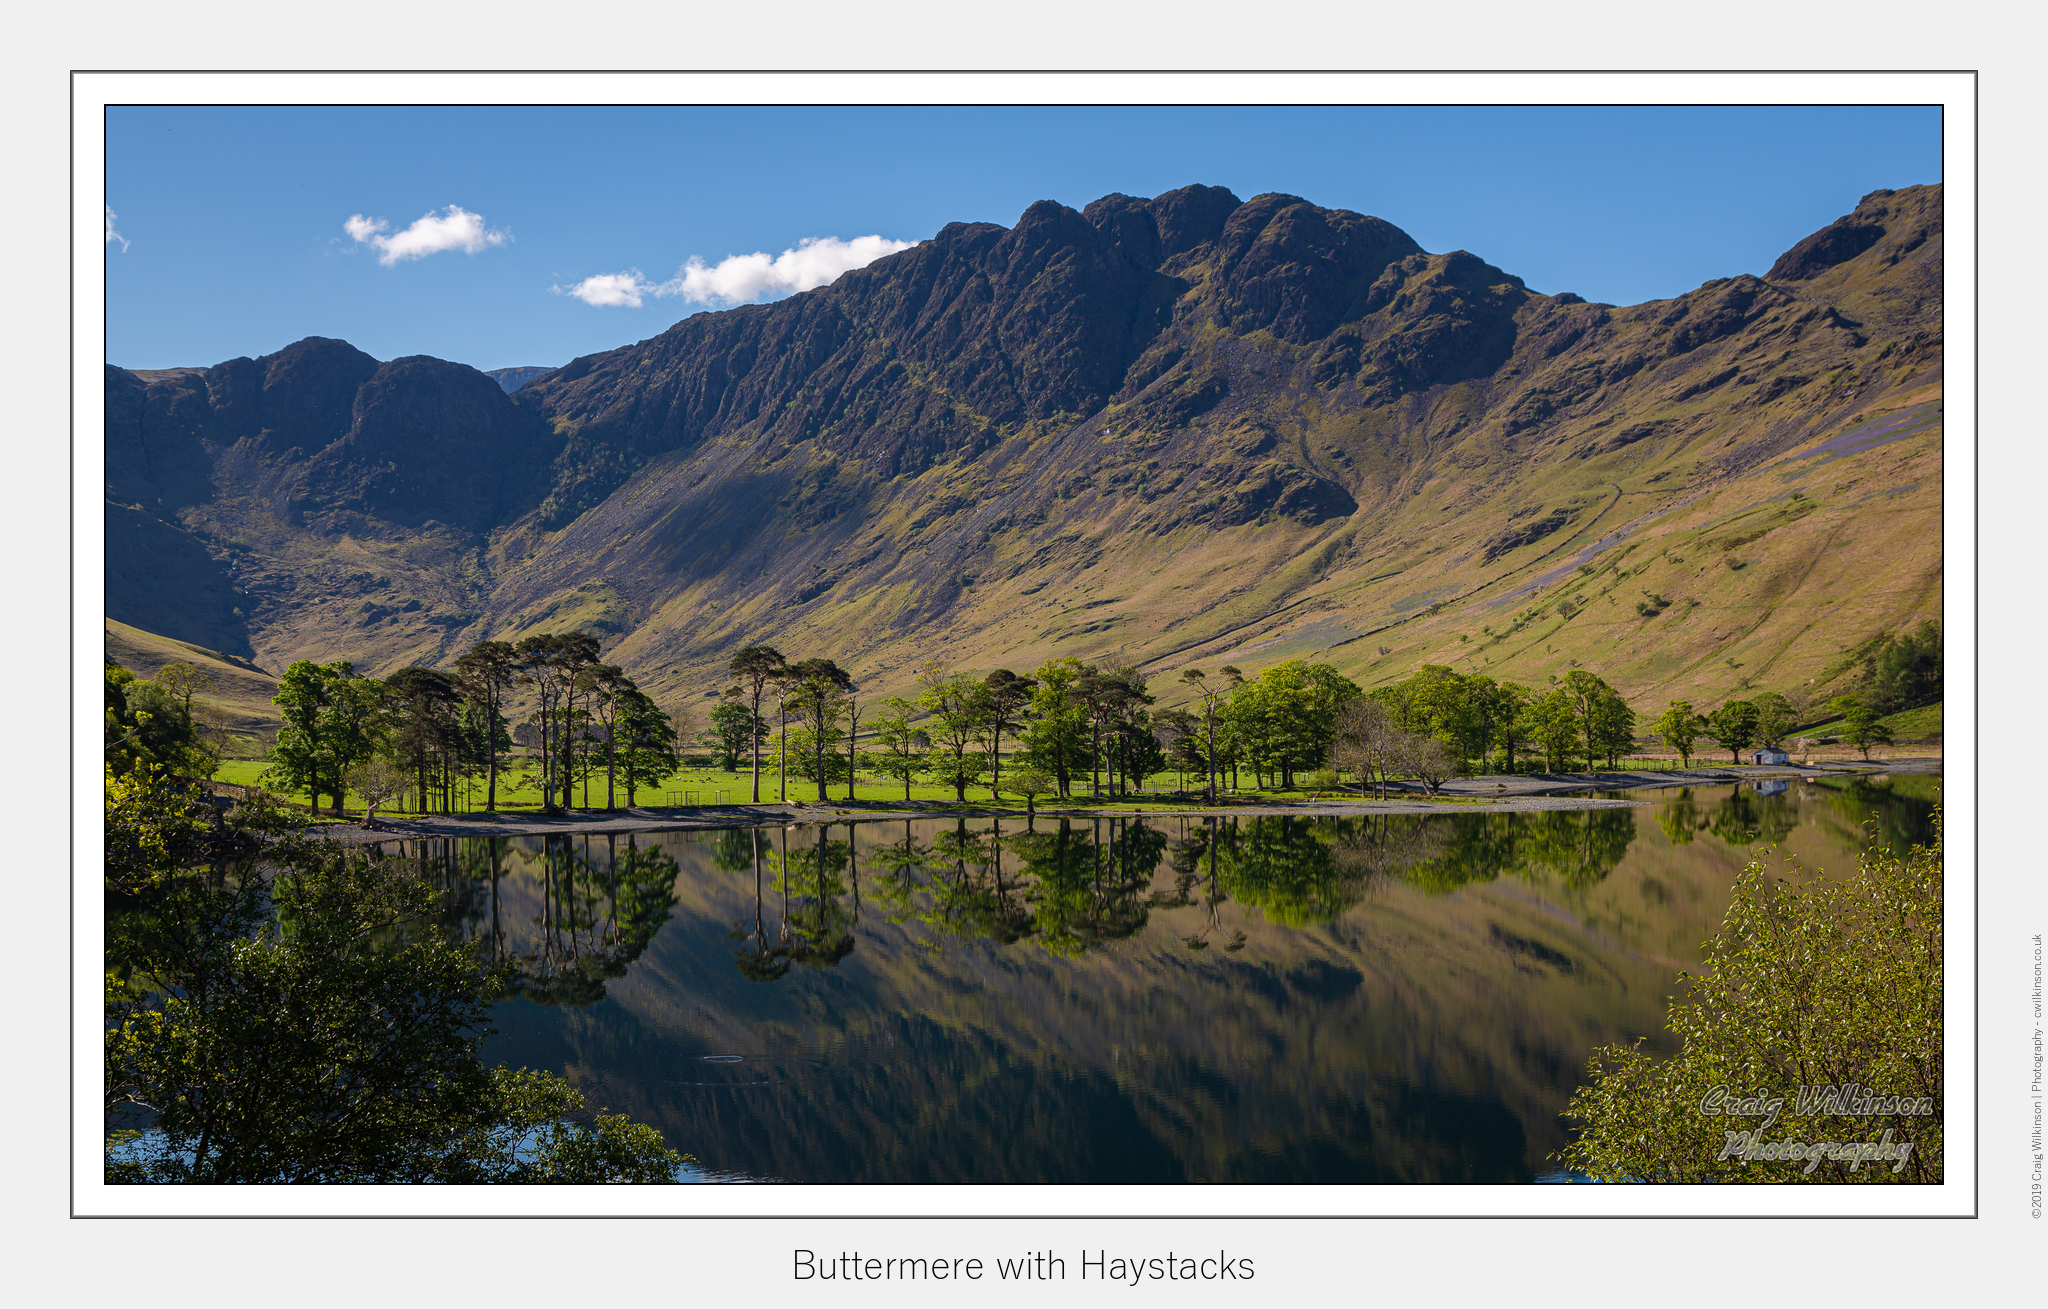 01-Buttermere with Haystacks - (5760 x 3840).jpg